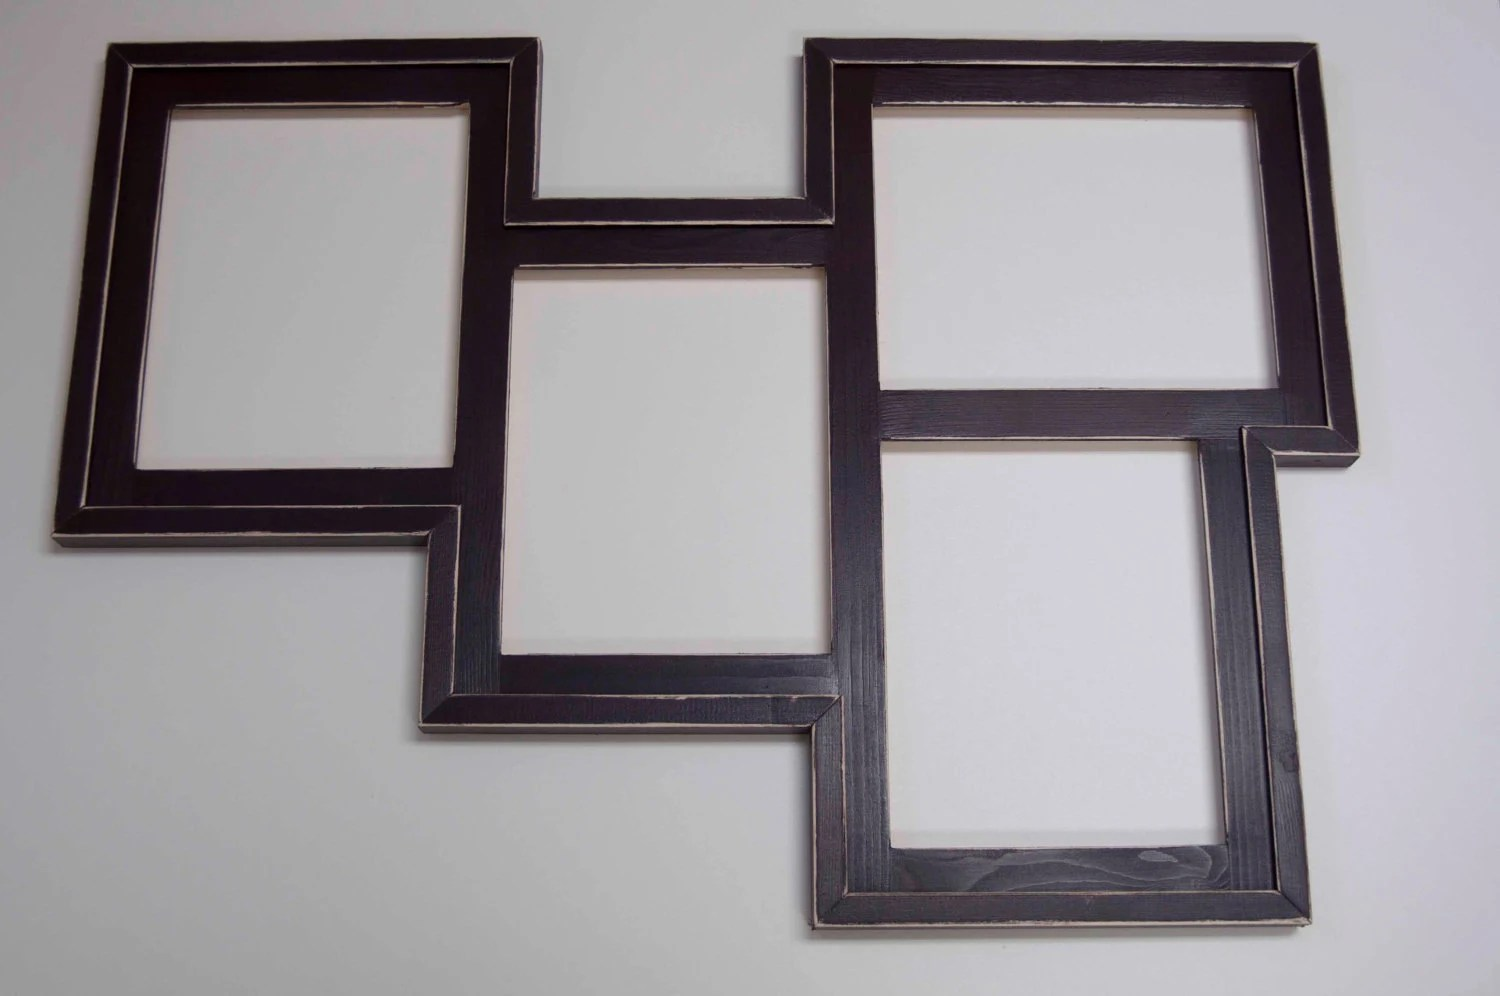 Collage Picture Frame MULTI 4 Opening 8x10 Distressed